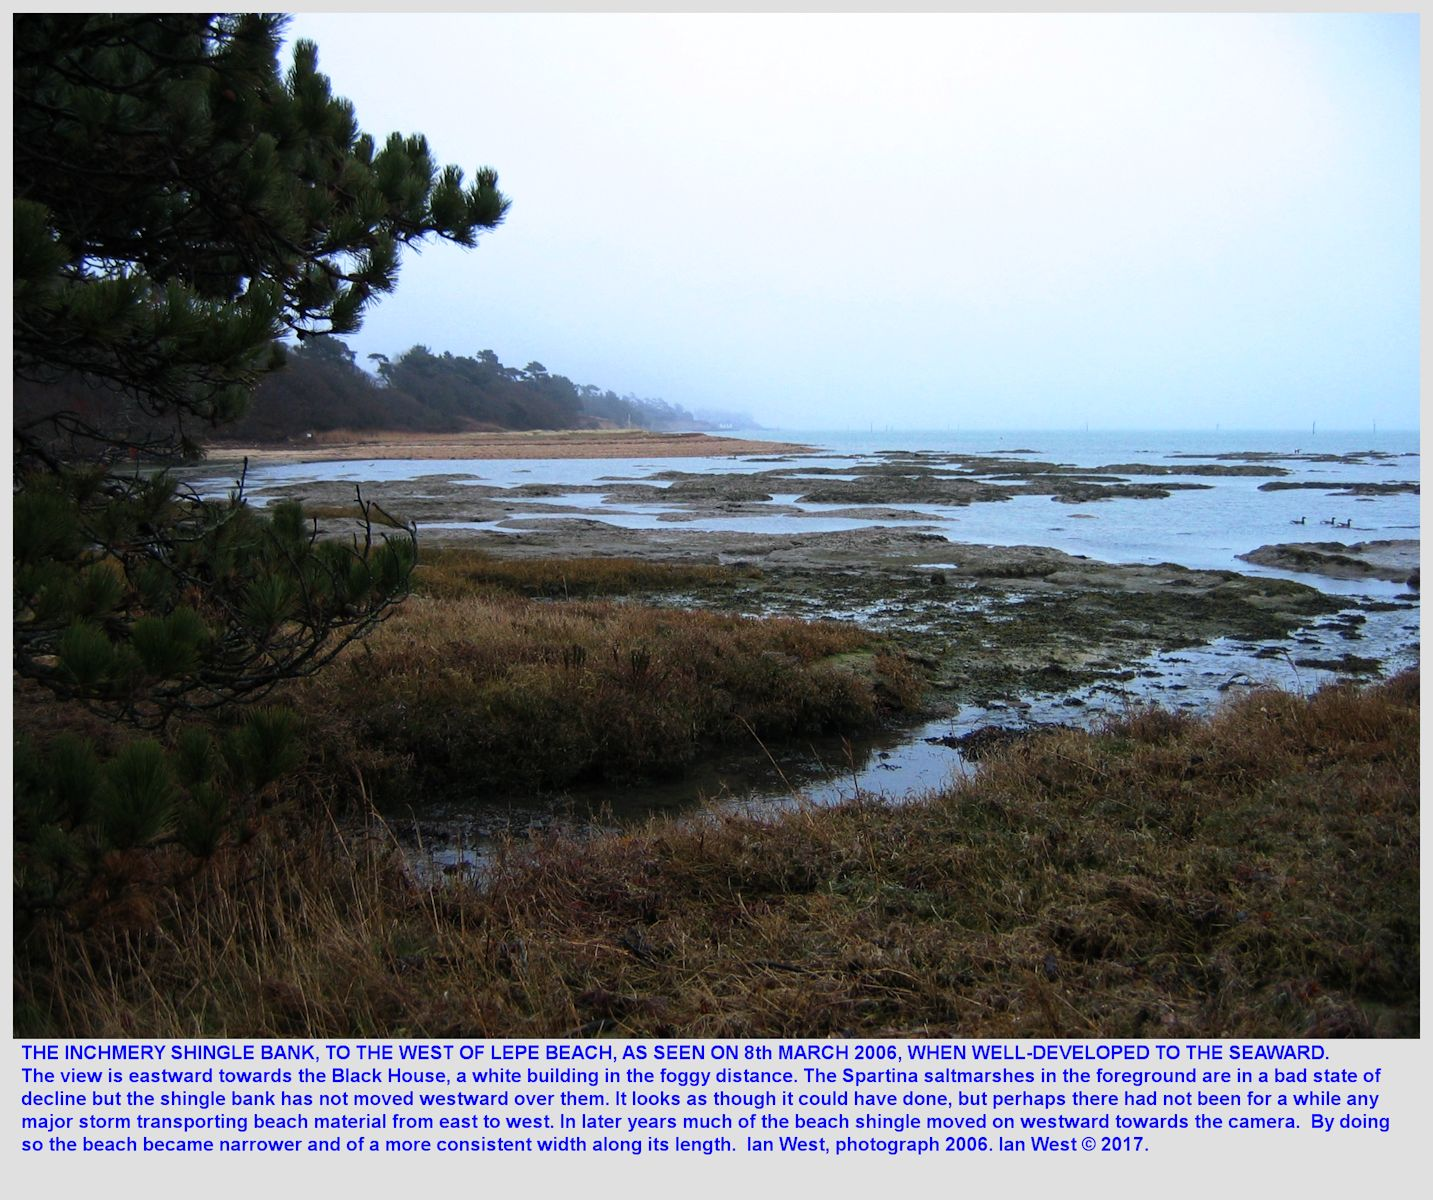 The shingle bank in front of Inchmery House, near Lepe Beach, Hampshire, as seen in 2006 with the eroded remains of Spartina saltmarshes, middle-distance view towards the east